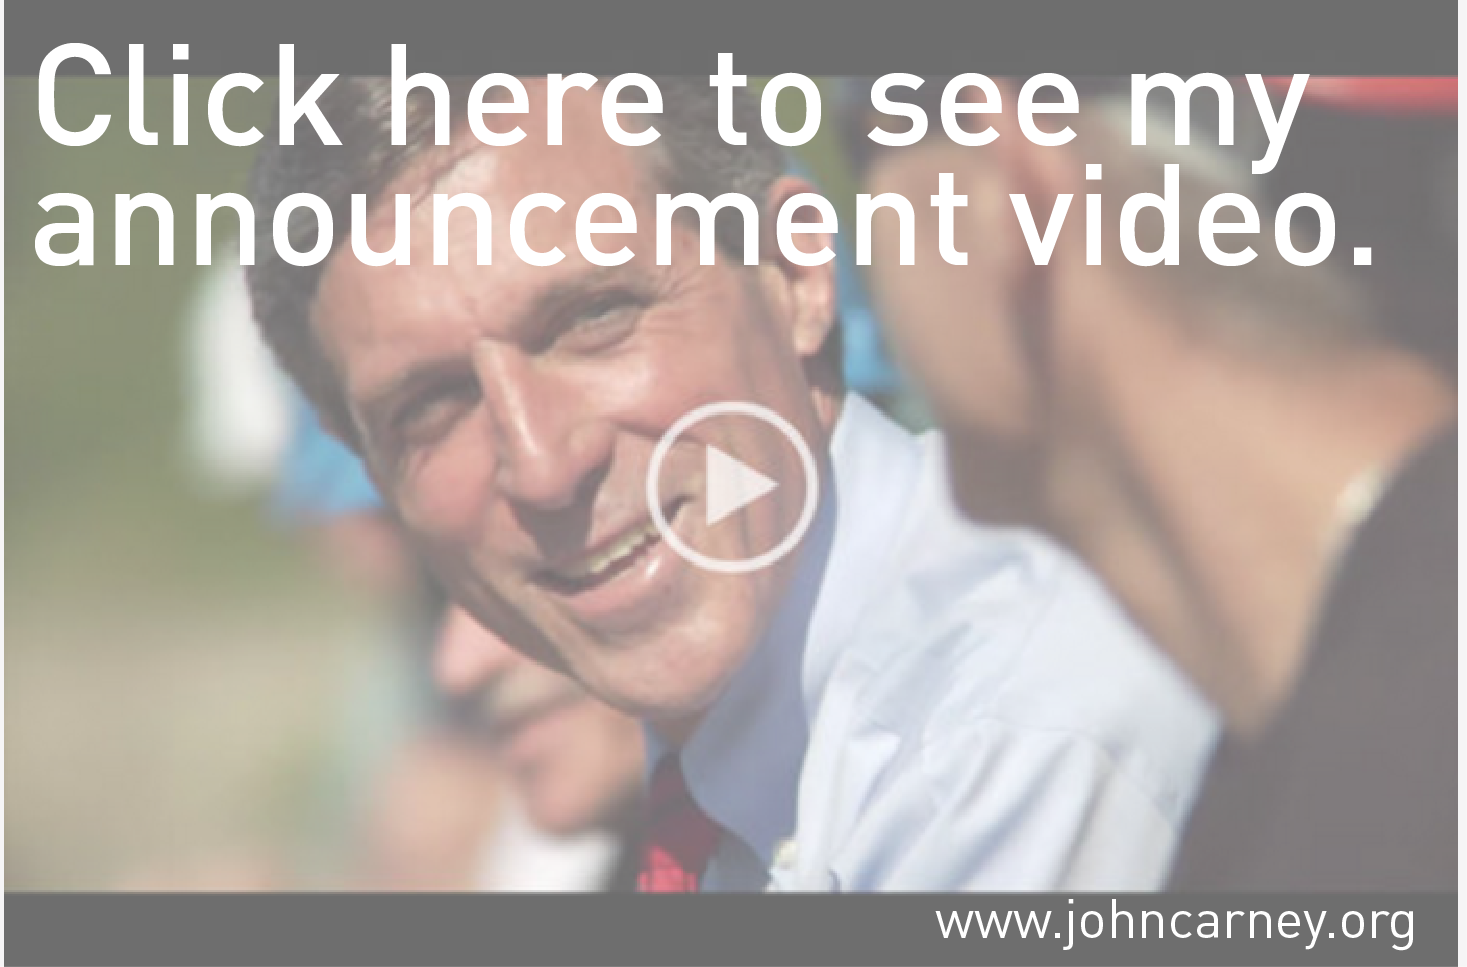 Click here to see my announcement video